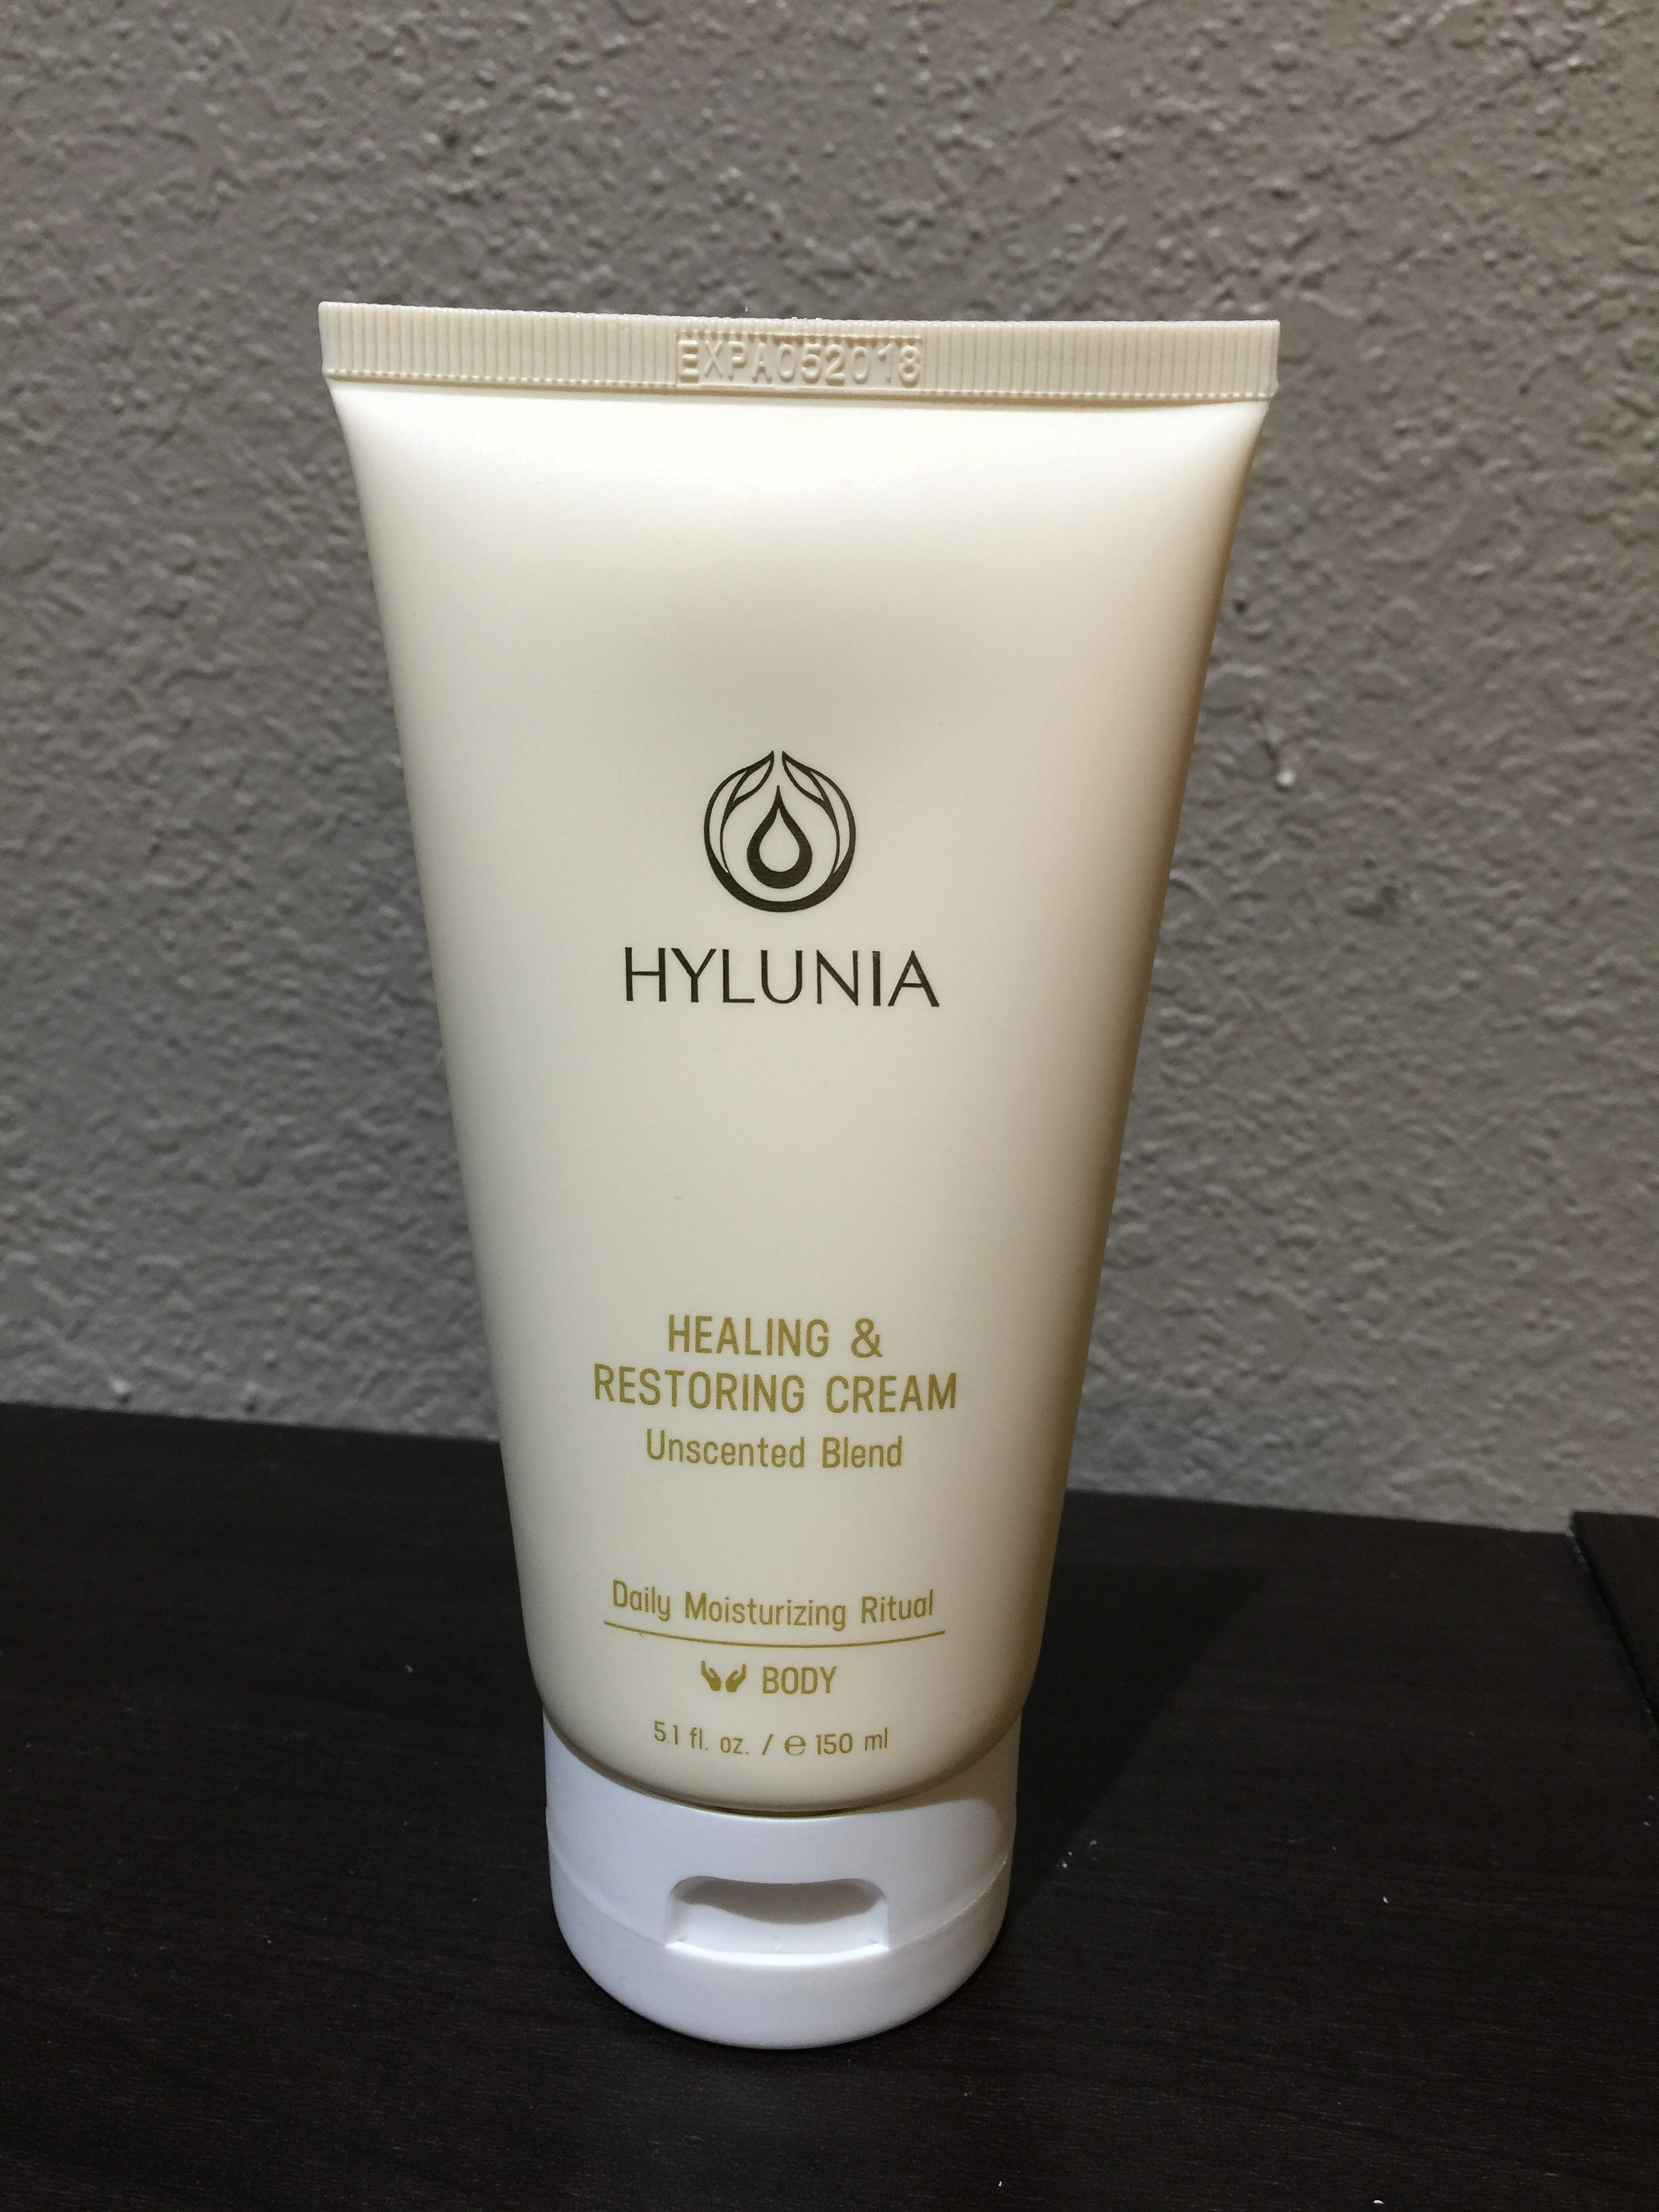 Hylunia Healing And Restoring For After Brazilian Wax